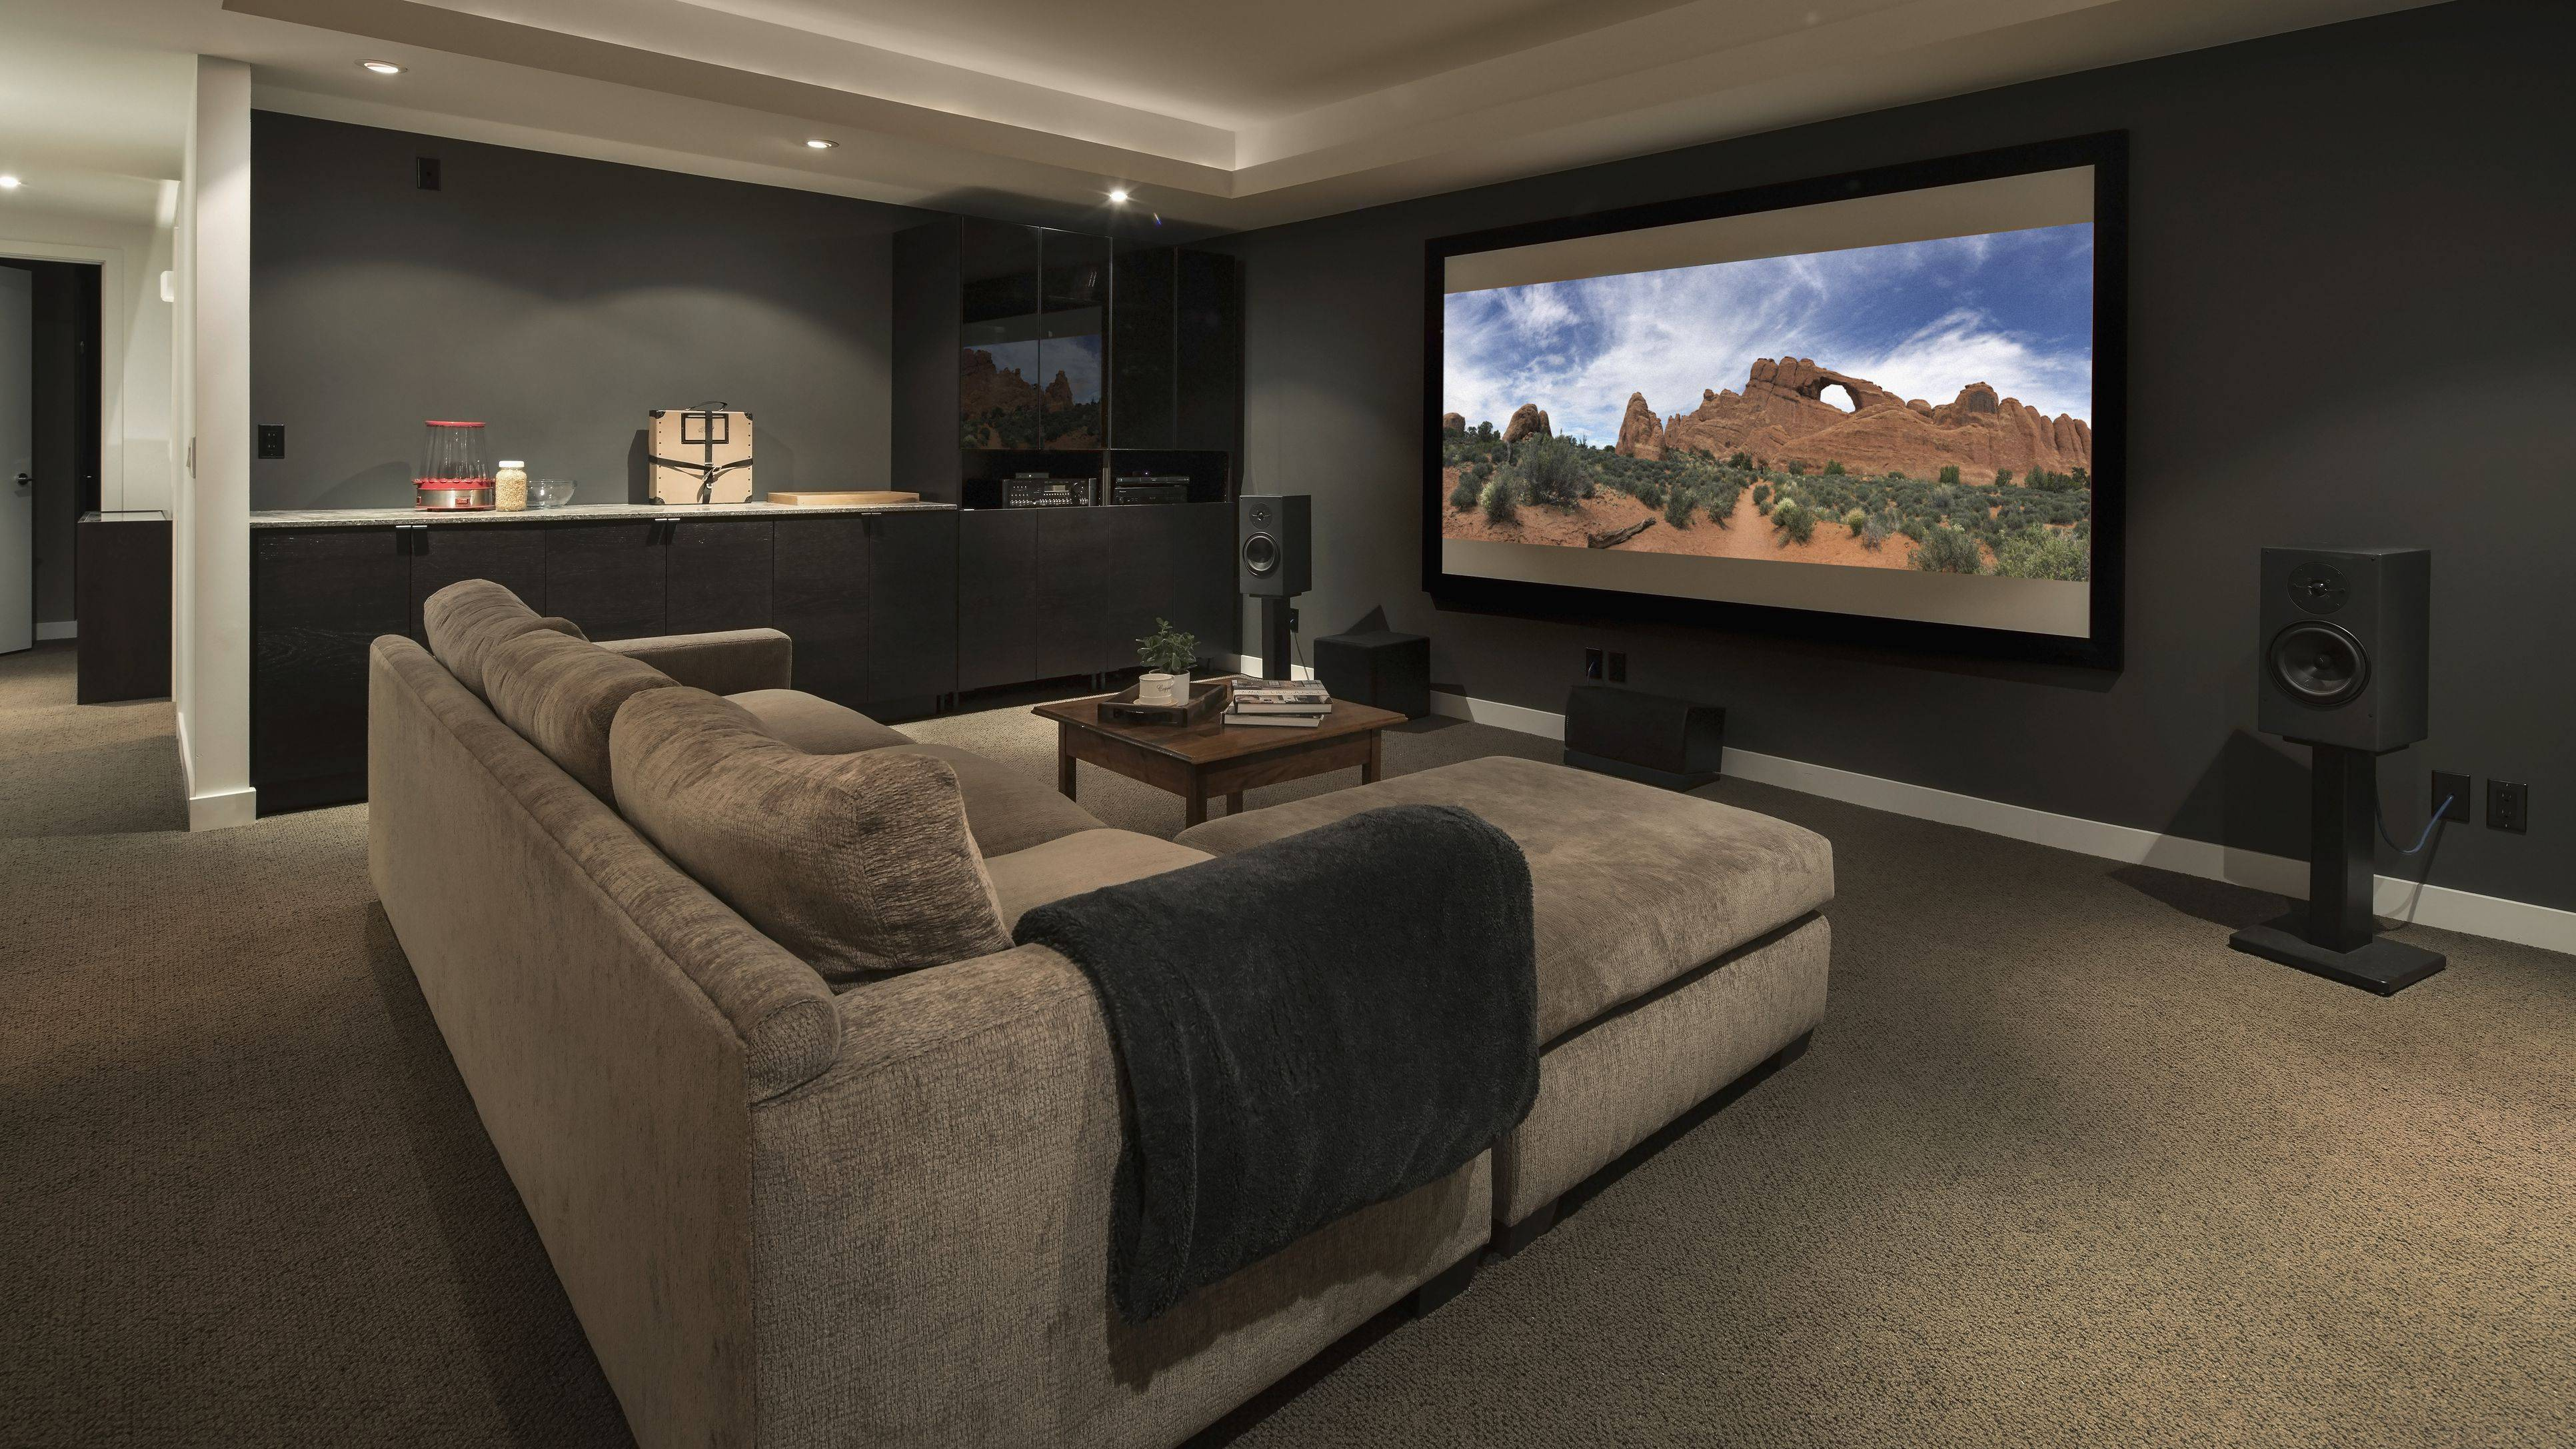 movie playing on projection screen in home theater 5bdb7eb0c9e77c0026d2970f